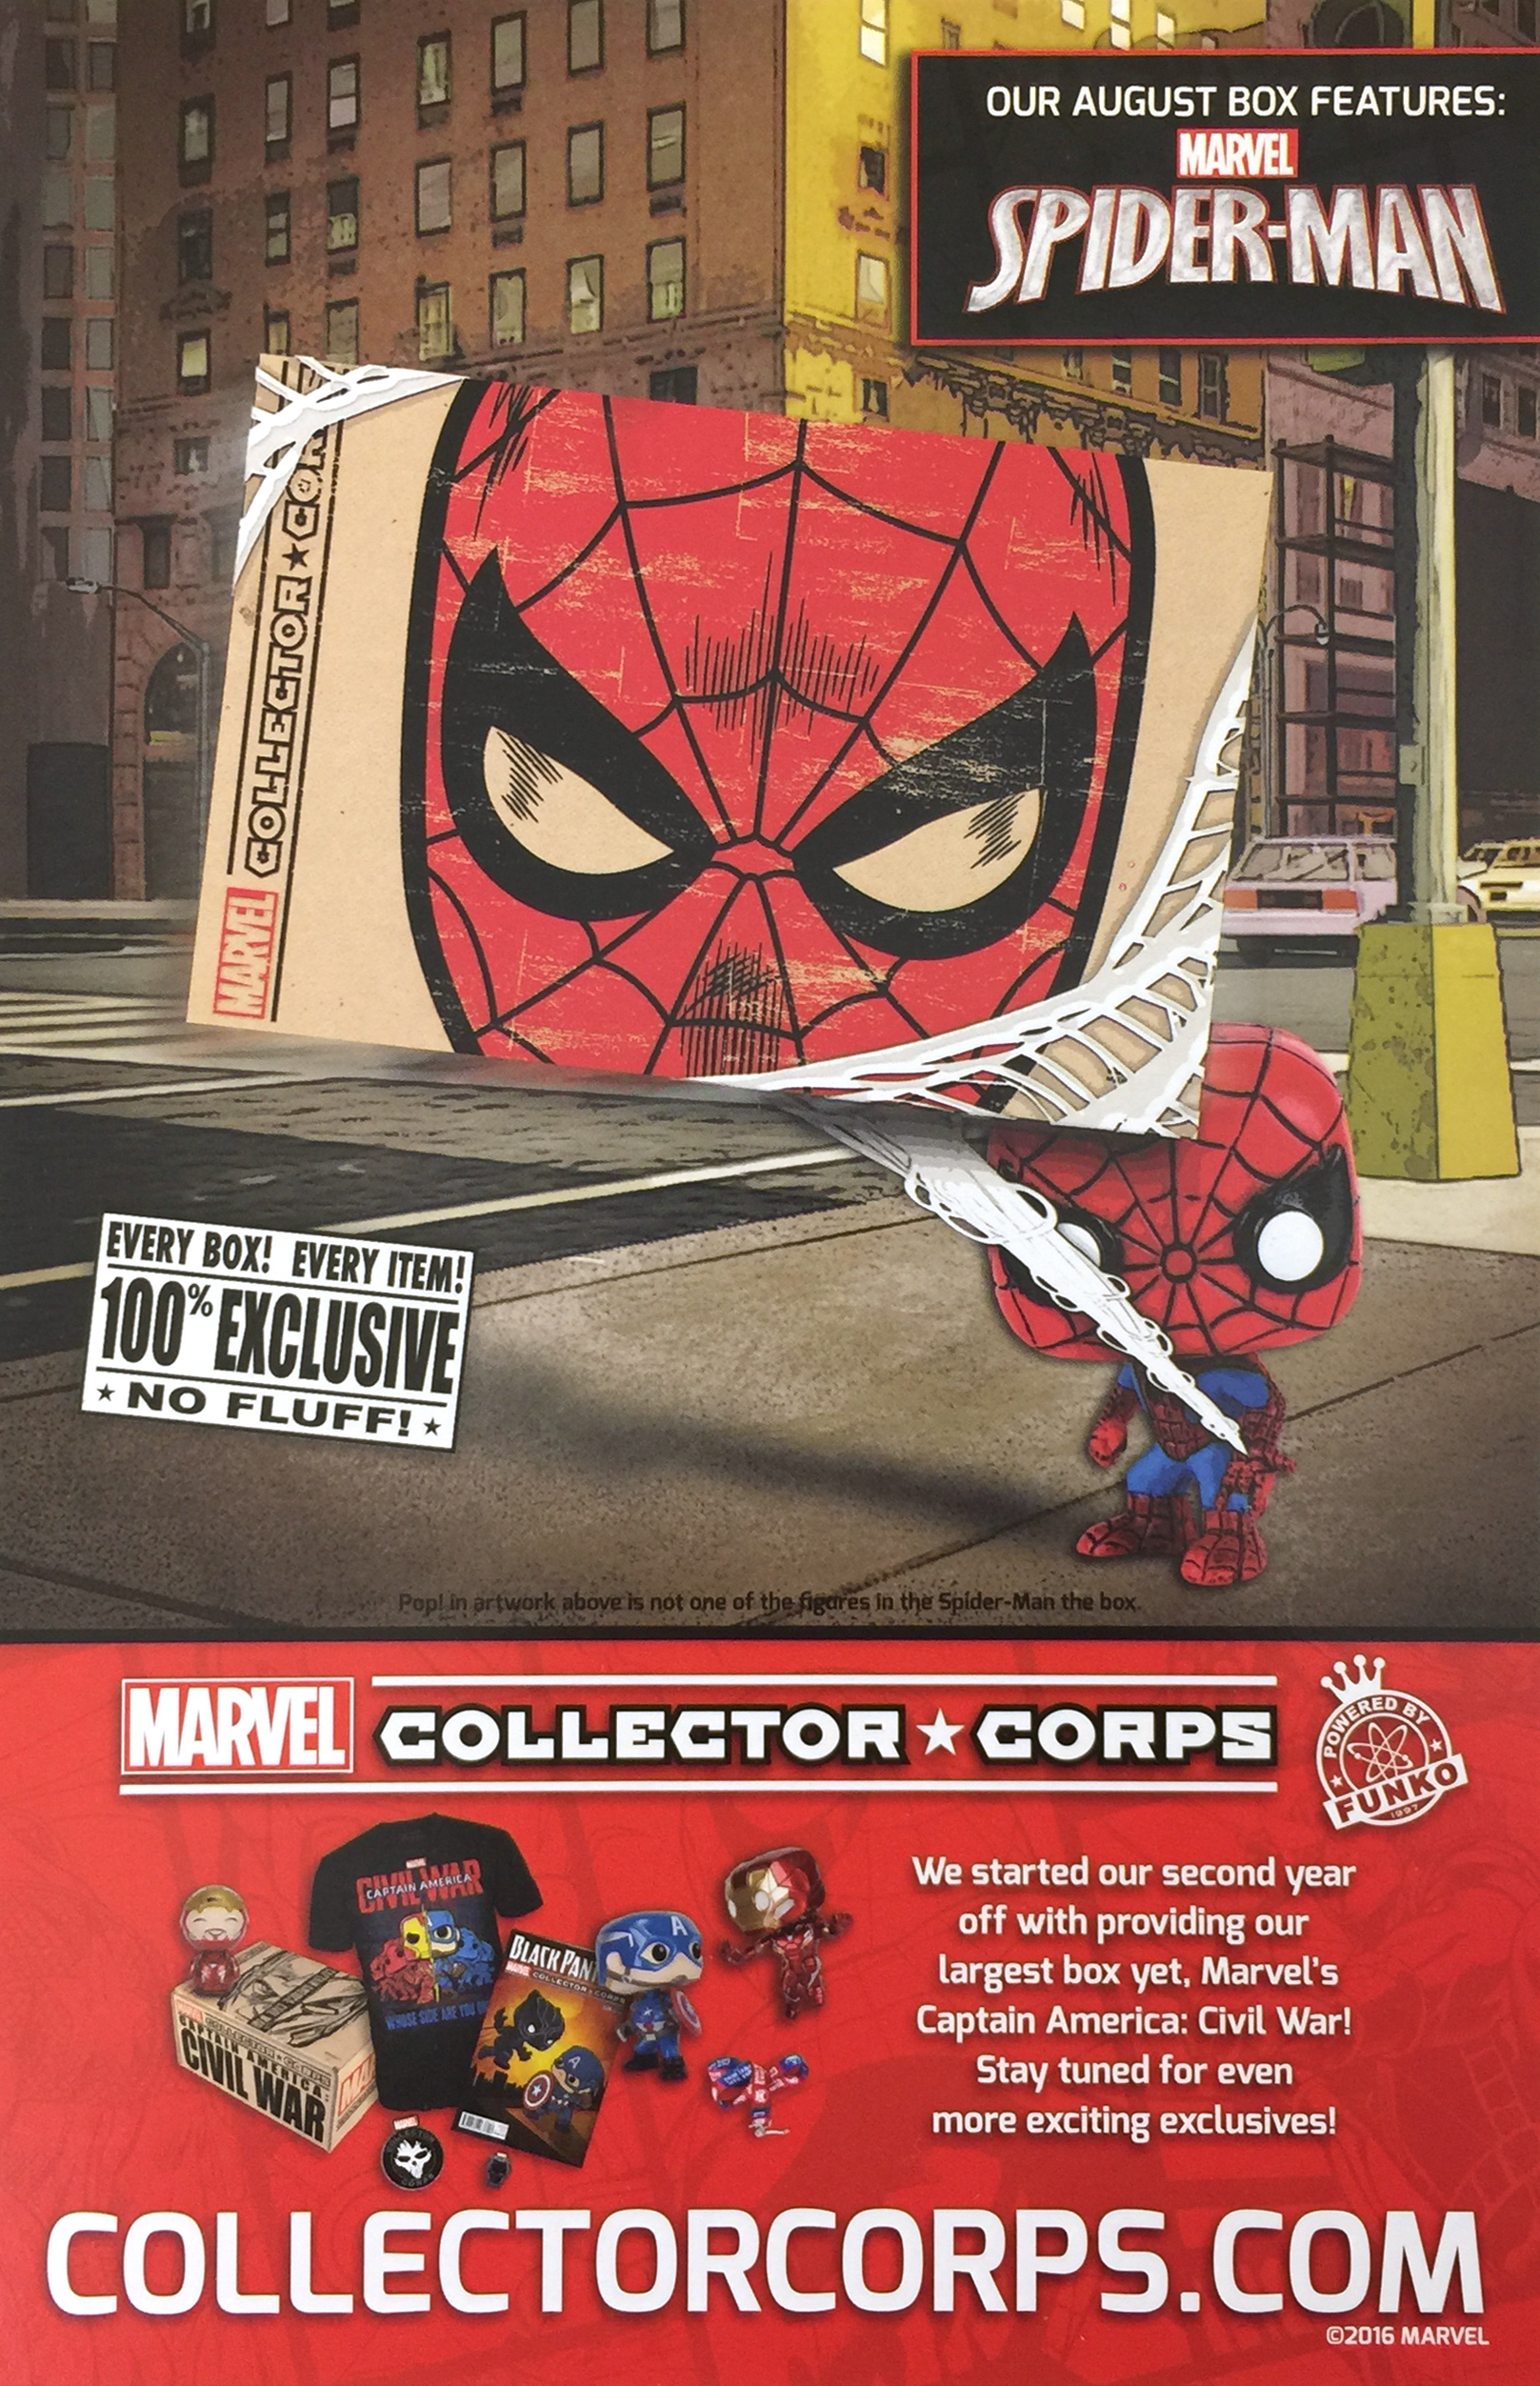 Marvel Collector Corps - August - Spider-Man